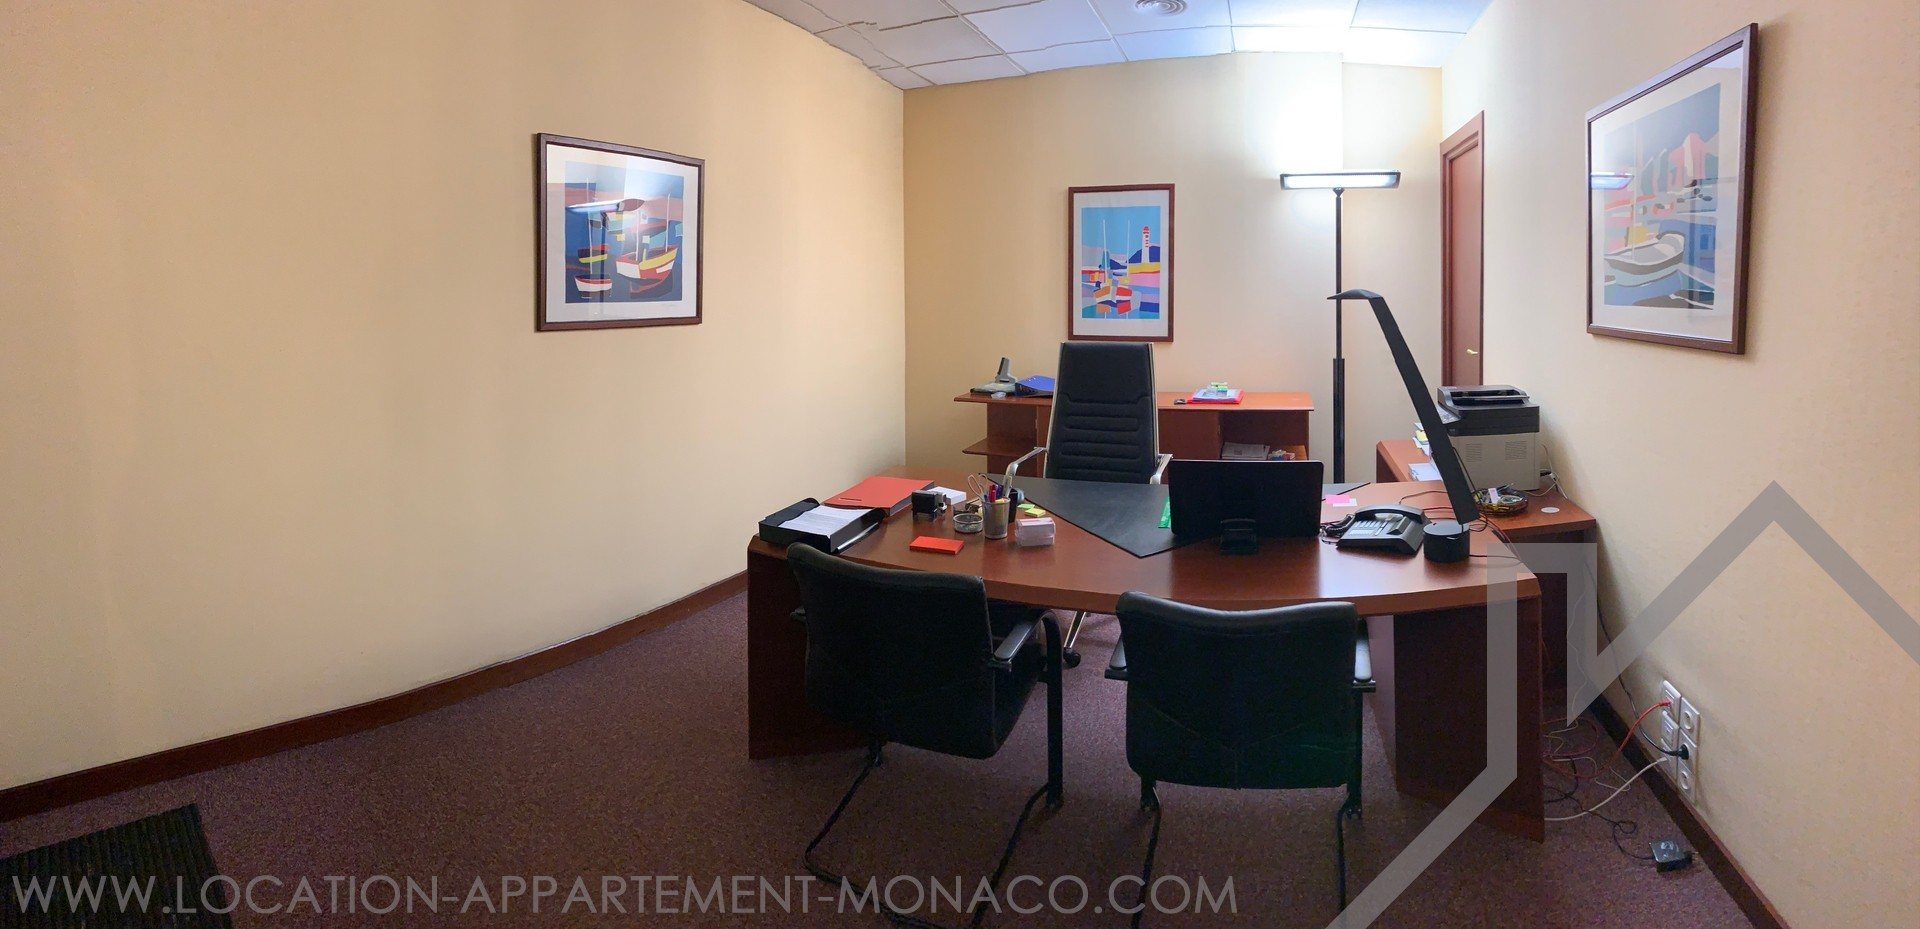 Office exclusive MBC - Apartments for rent in Monaco